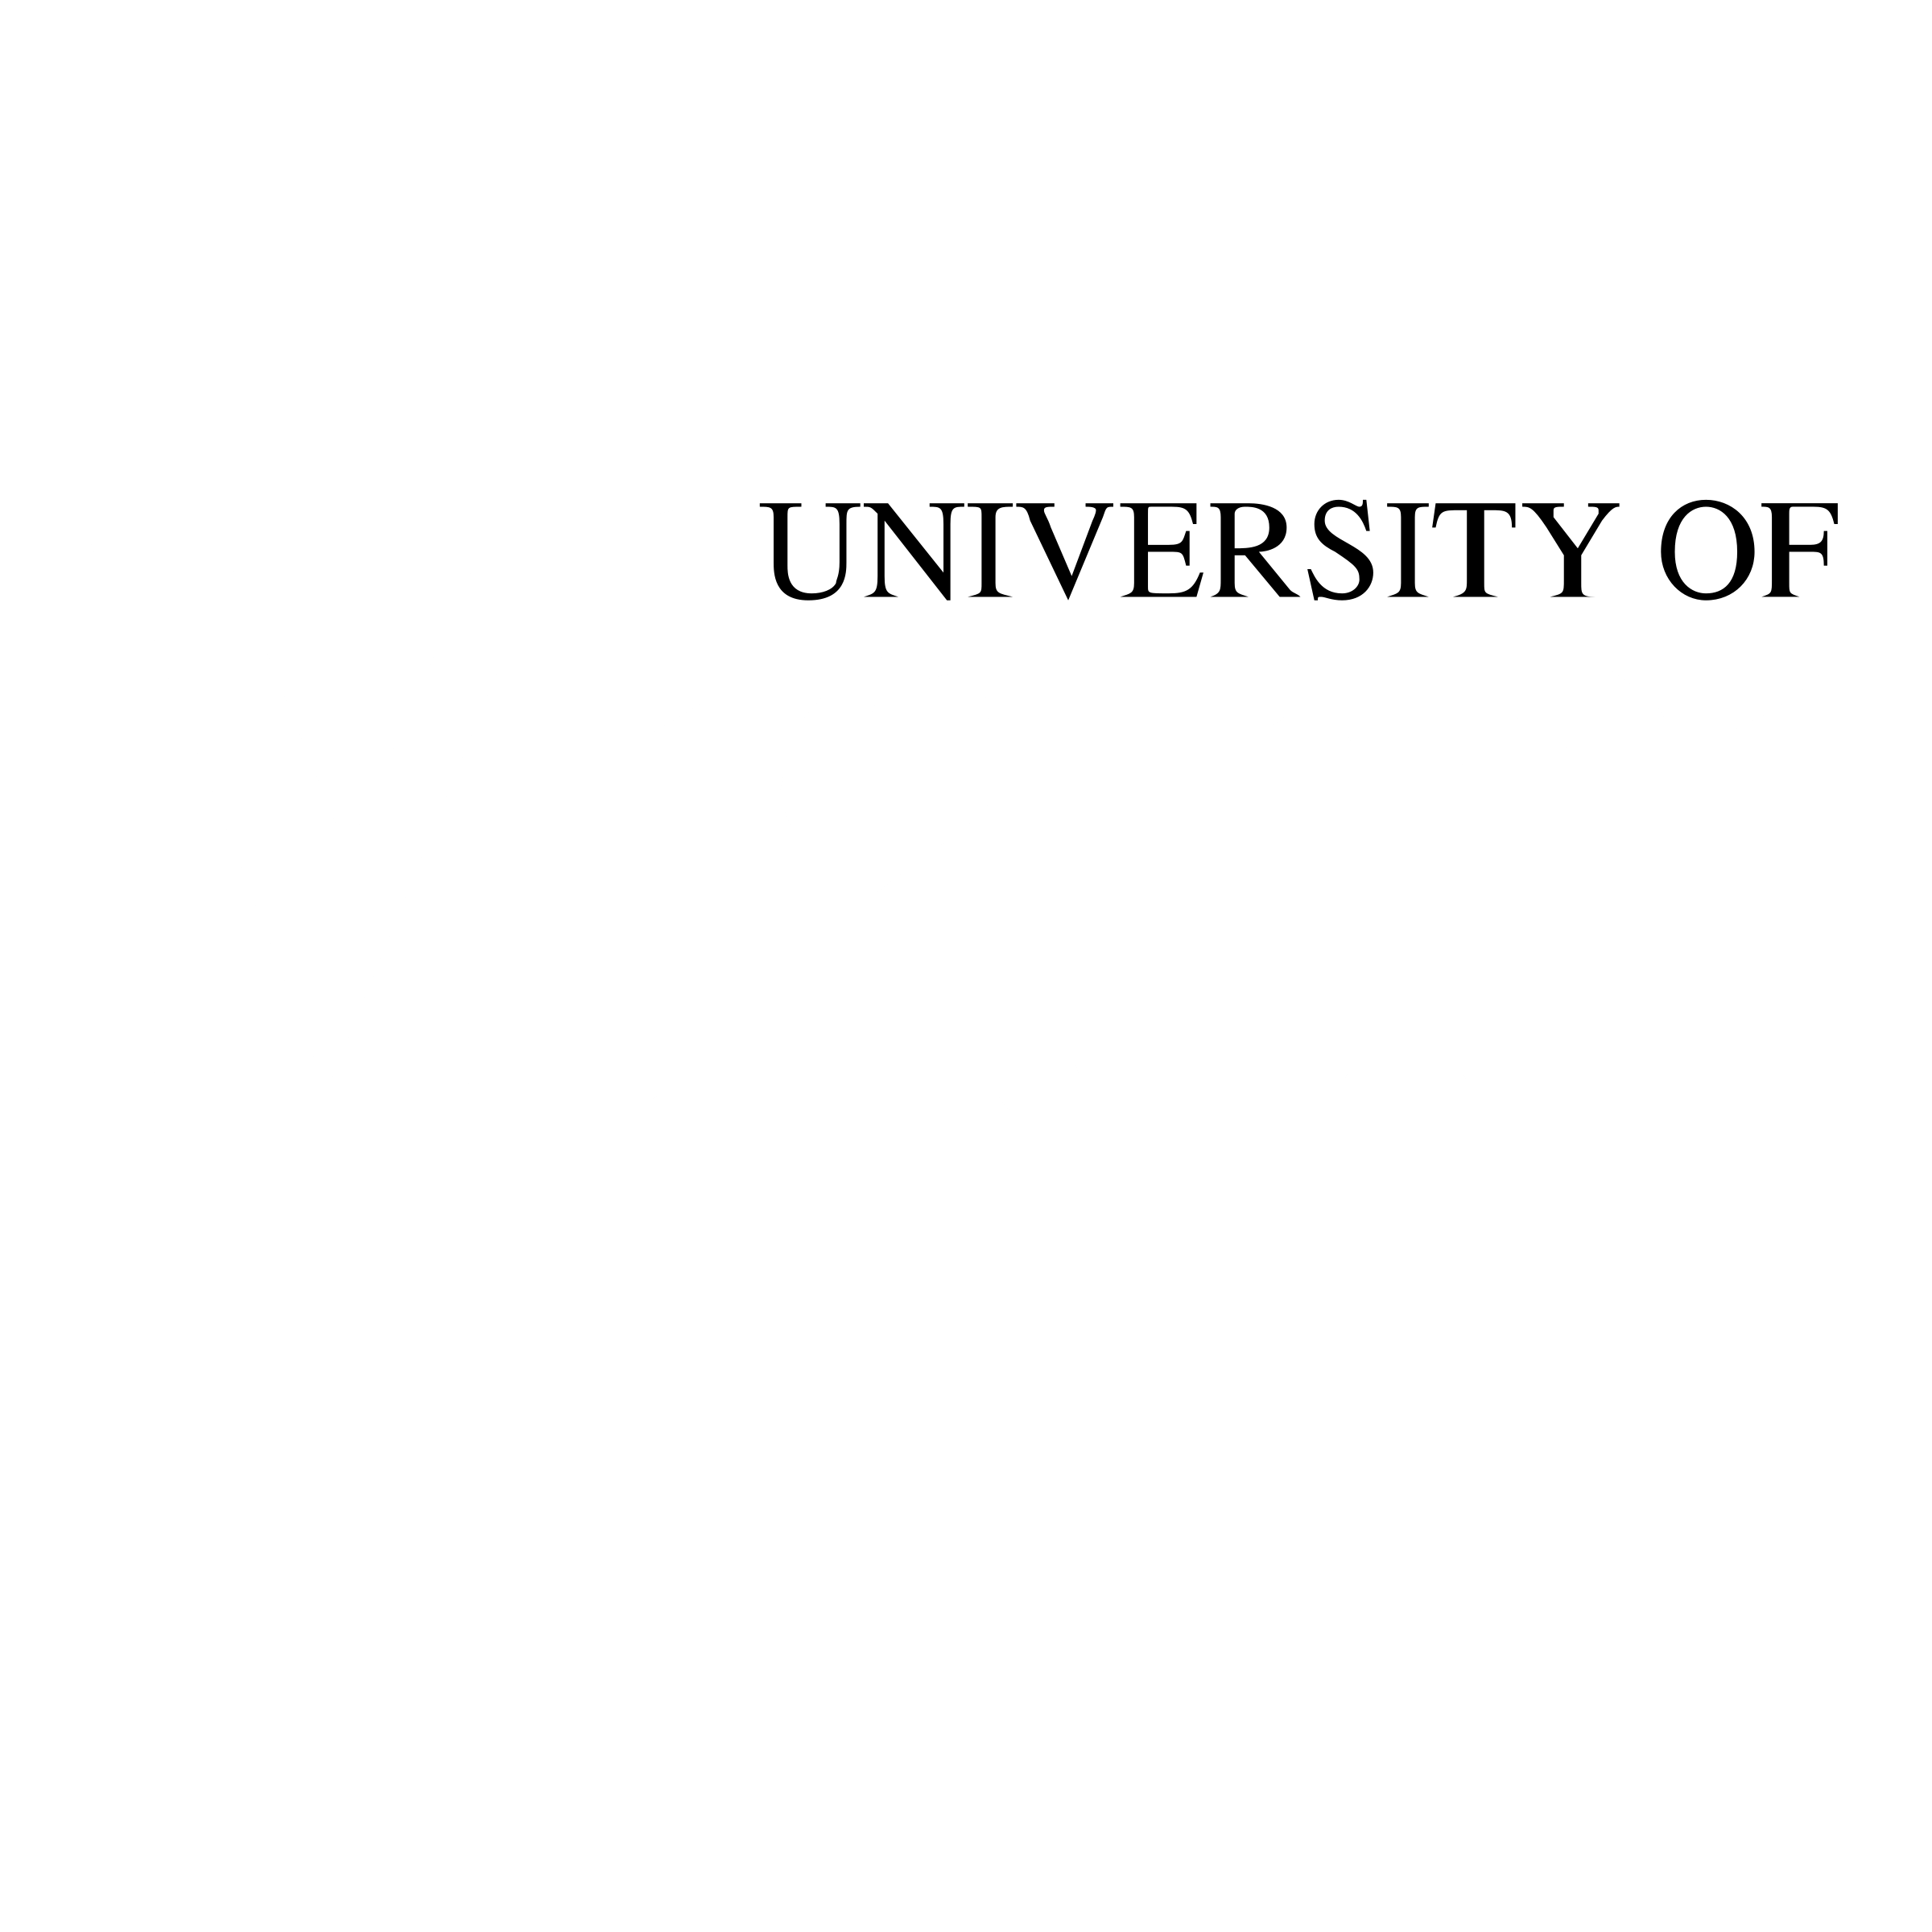 University Of Miami Logo PNG Transparent & SVG Vector - Freebie Supply Intended For University Of Miami Powerpoint Template